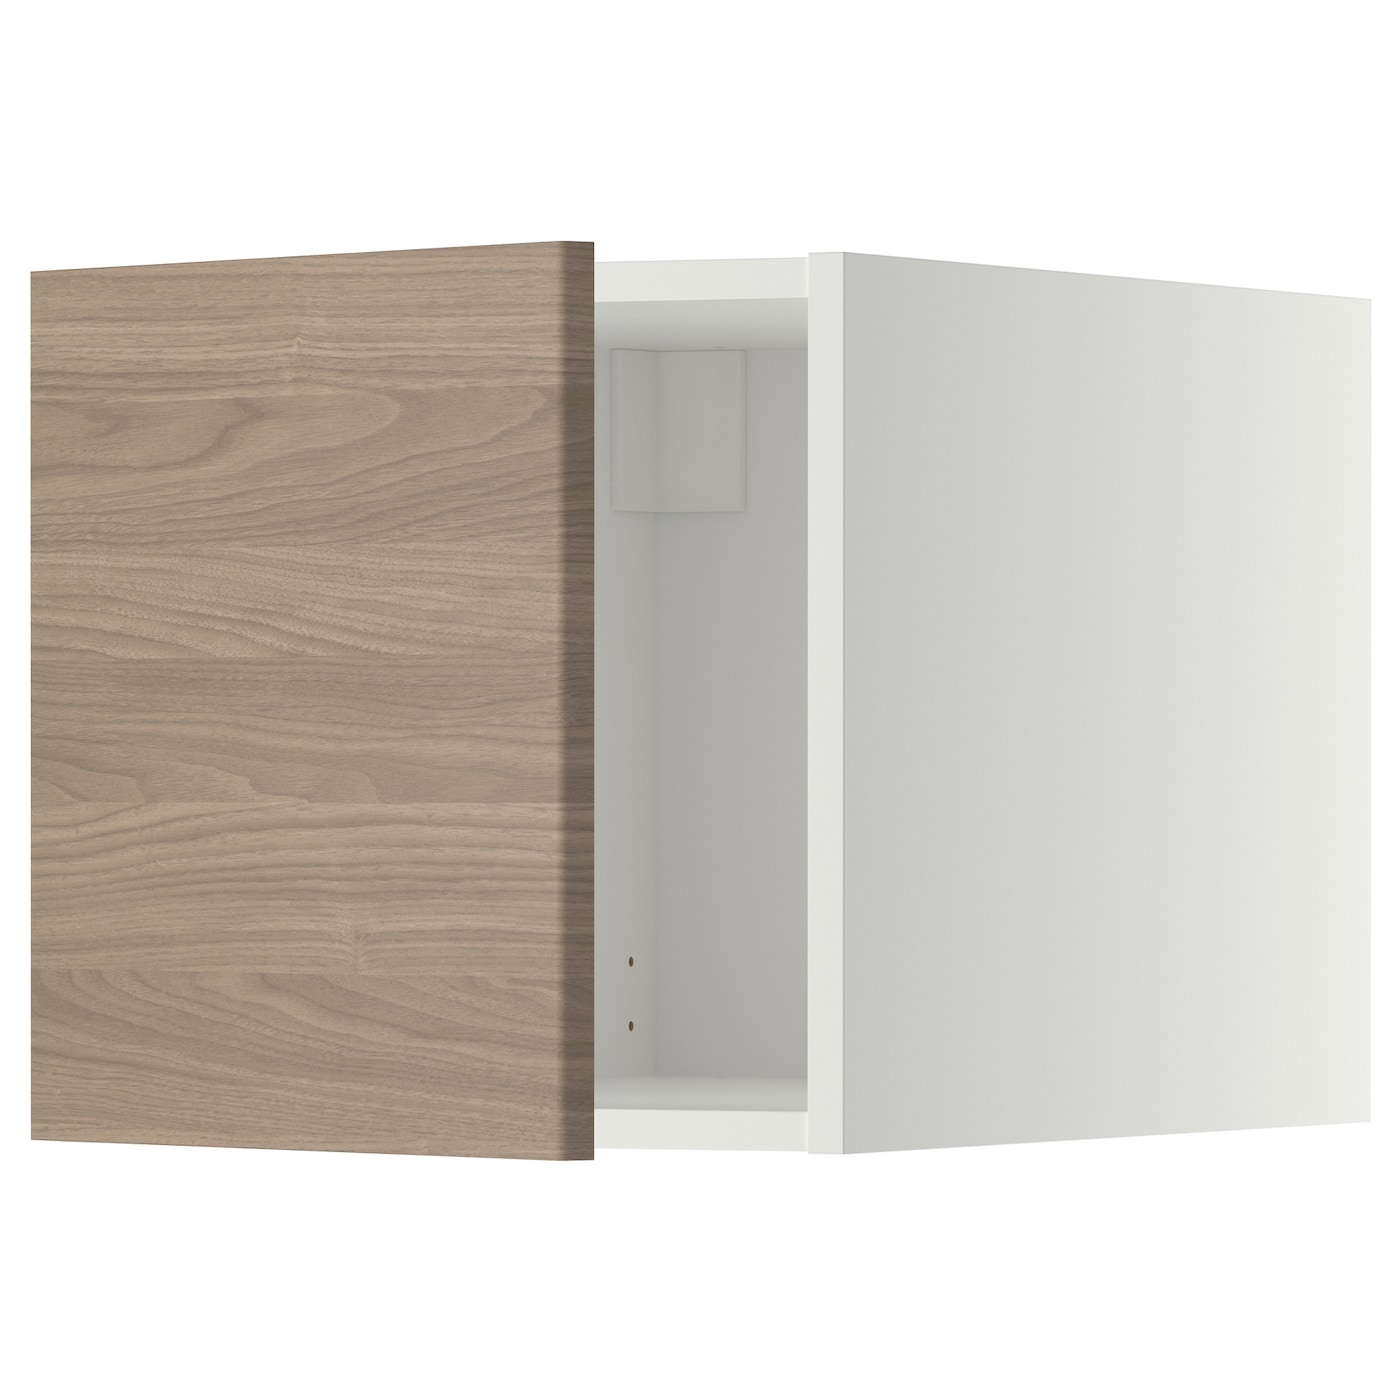 IKEA METOD Top Cabinet You Can Choose To Mount The Door On The Right  #776654 2000 2000 Parquet In Sala Da Pranzo